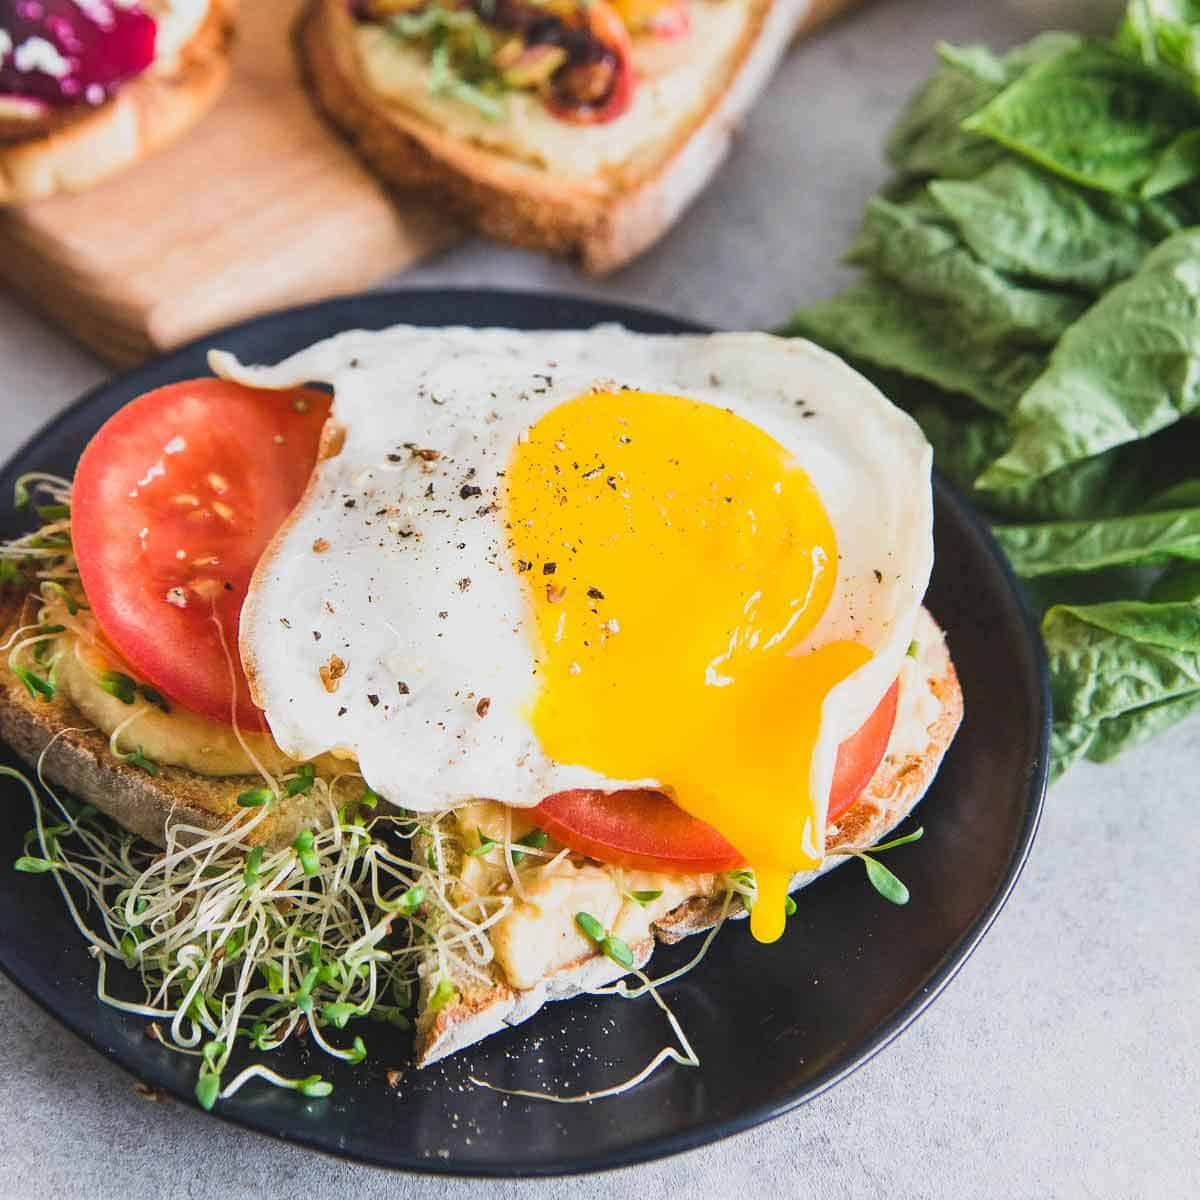 A runny fried egg tops sourdough hummus toast with fresh tomato slices along with a delicious beet smoothie recipe.